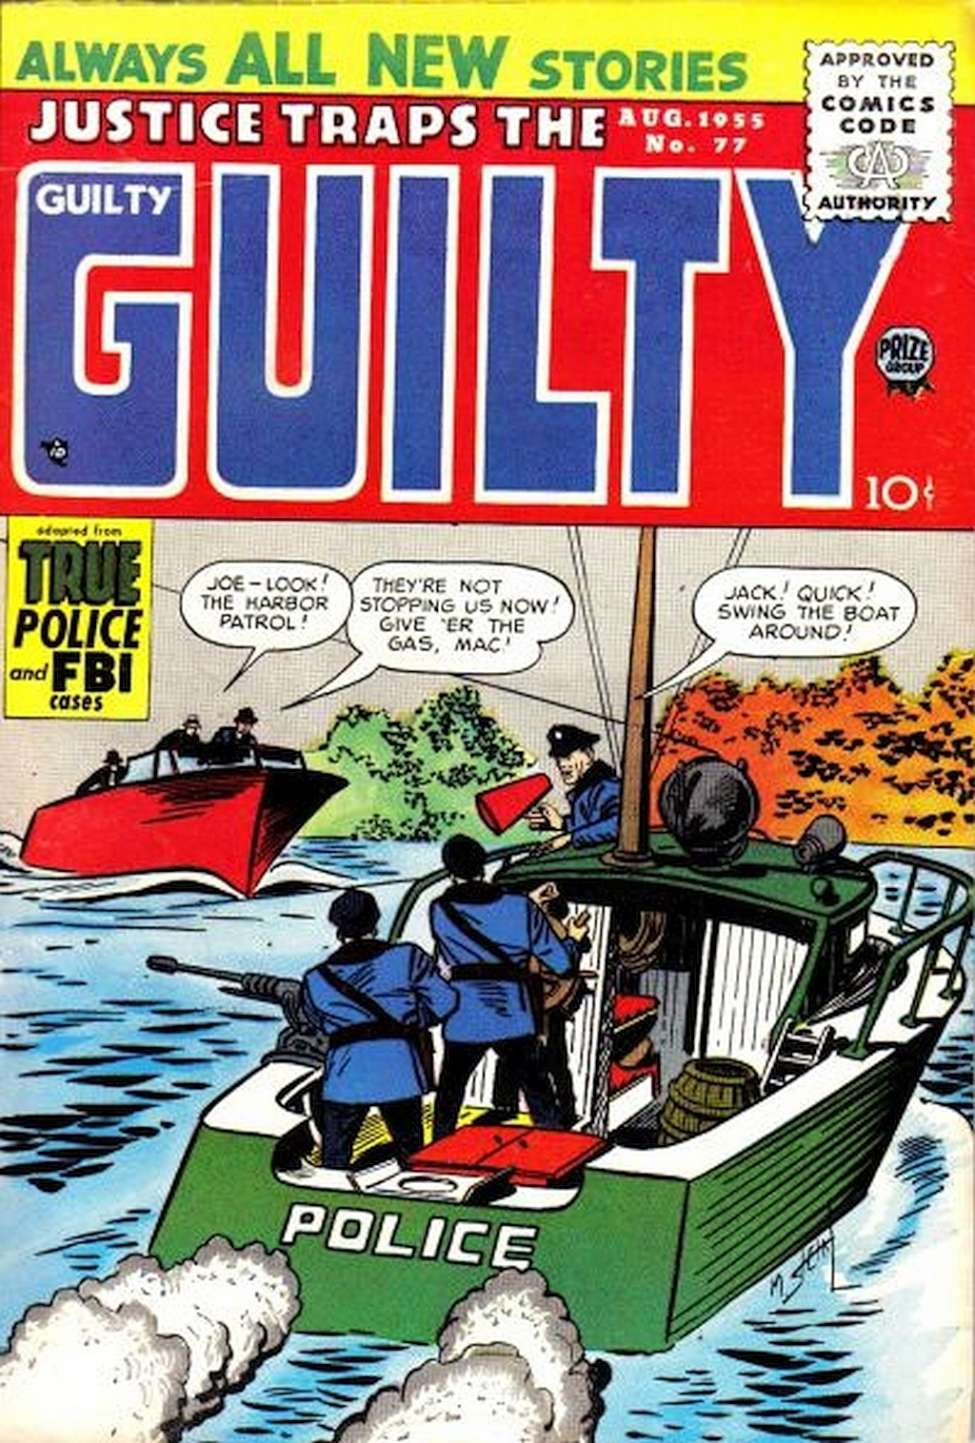 Comic Book Cover For Justice Traps the Guilty v8 11 (77)